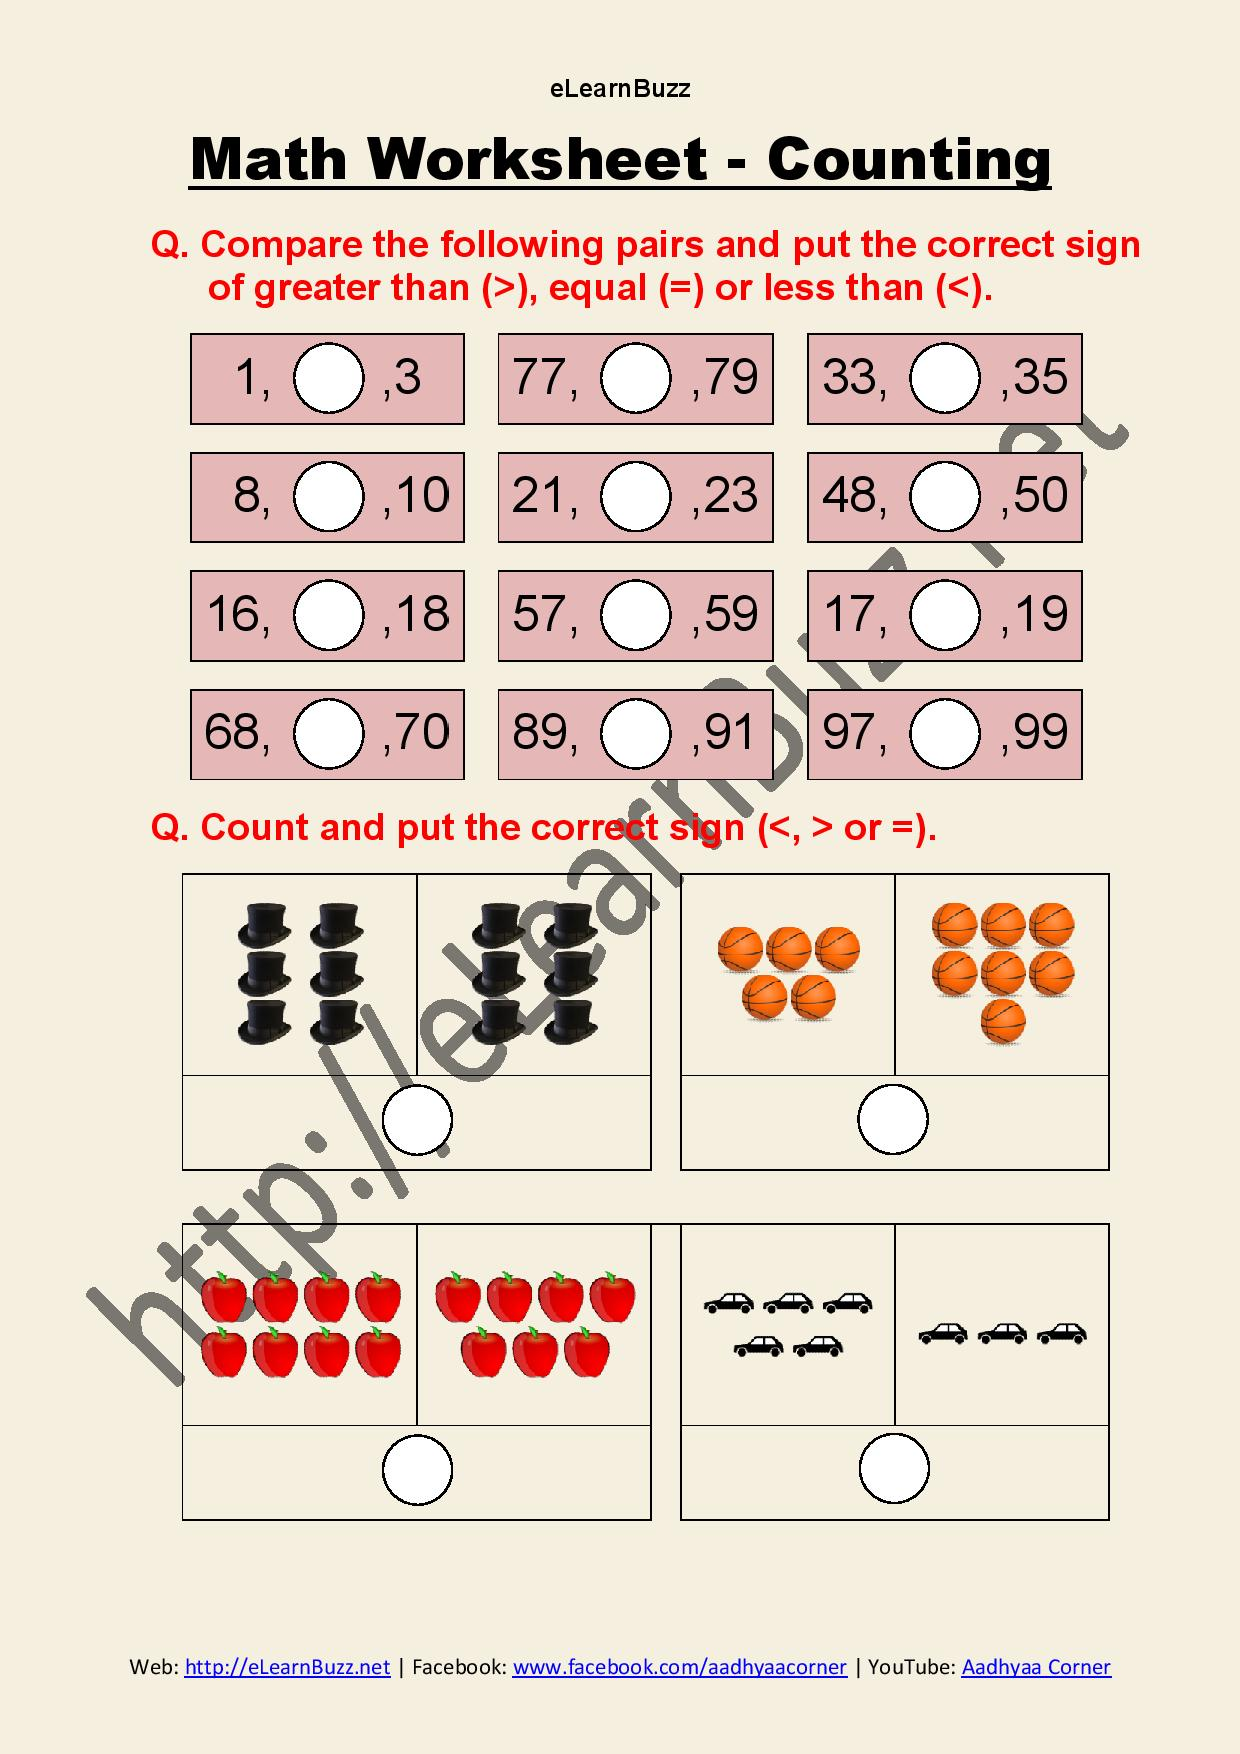 Counting Worksheet For Class 1 And Ukg Math